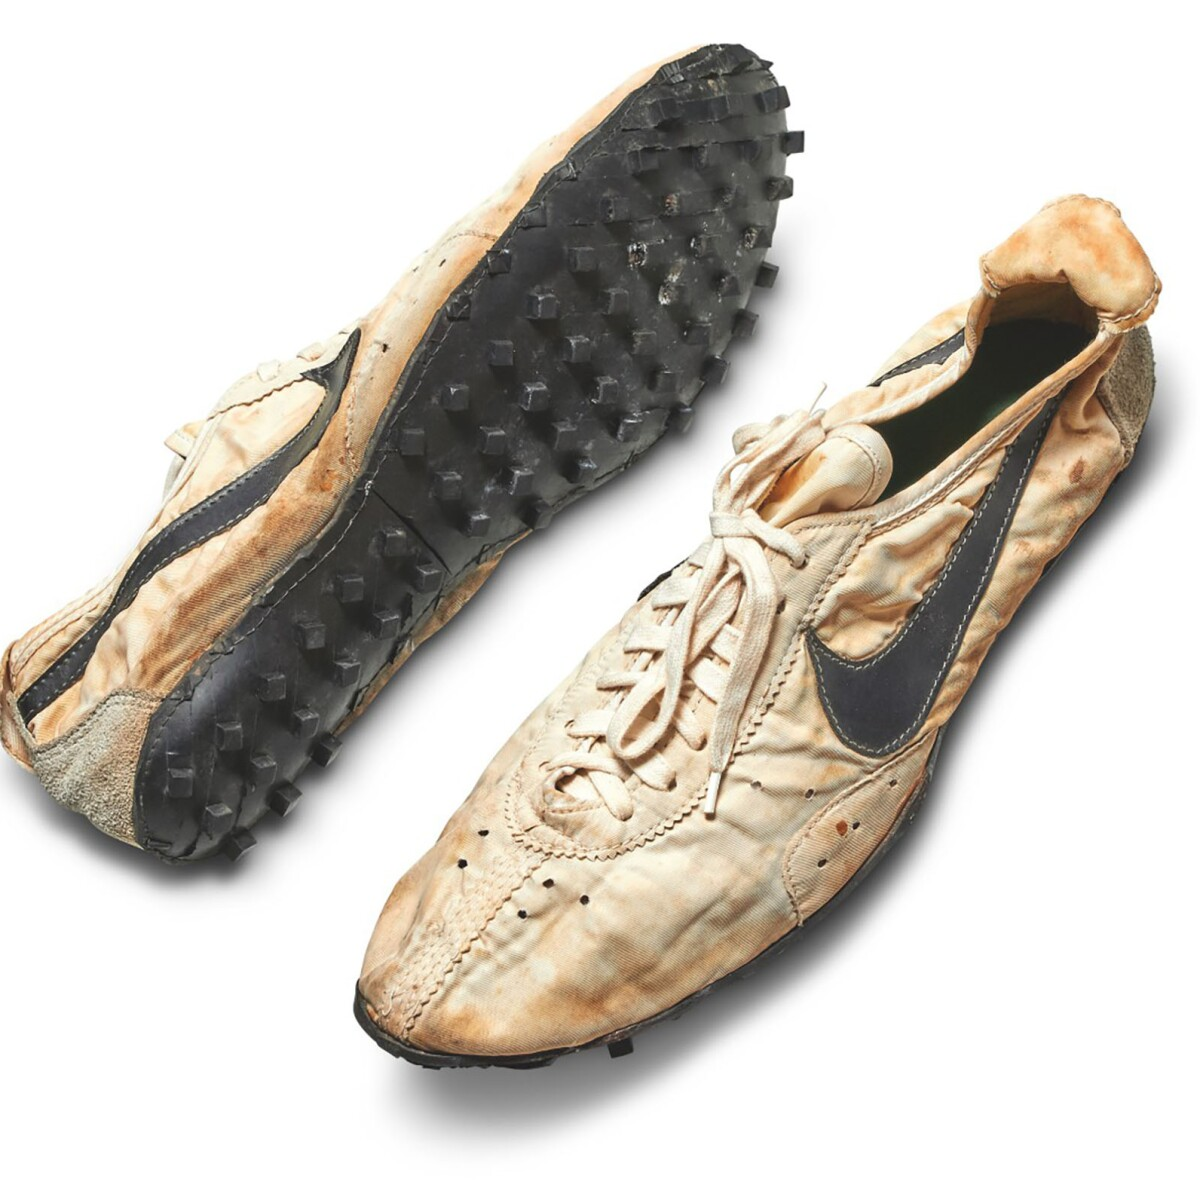 Rare Nike Racing Flats Set Auction Record | Online Auctions | Sotheby's Most Expensive Nike Shoes